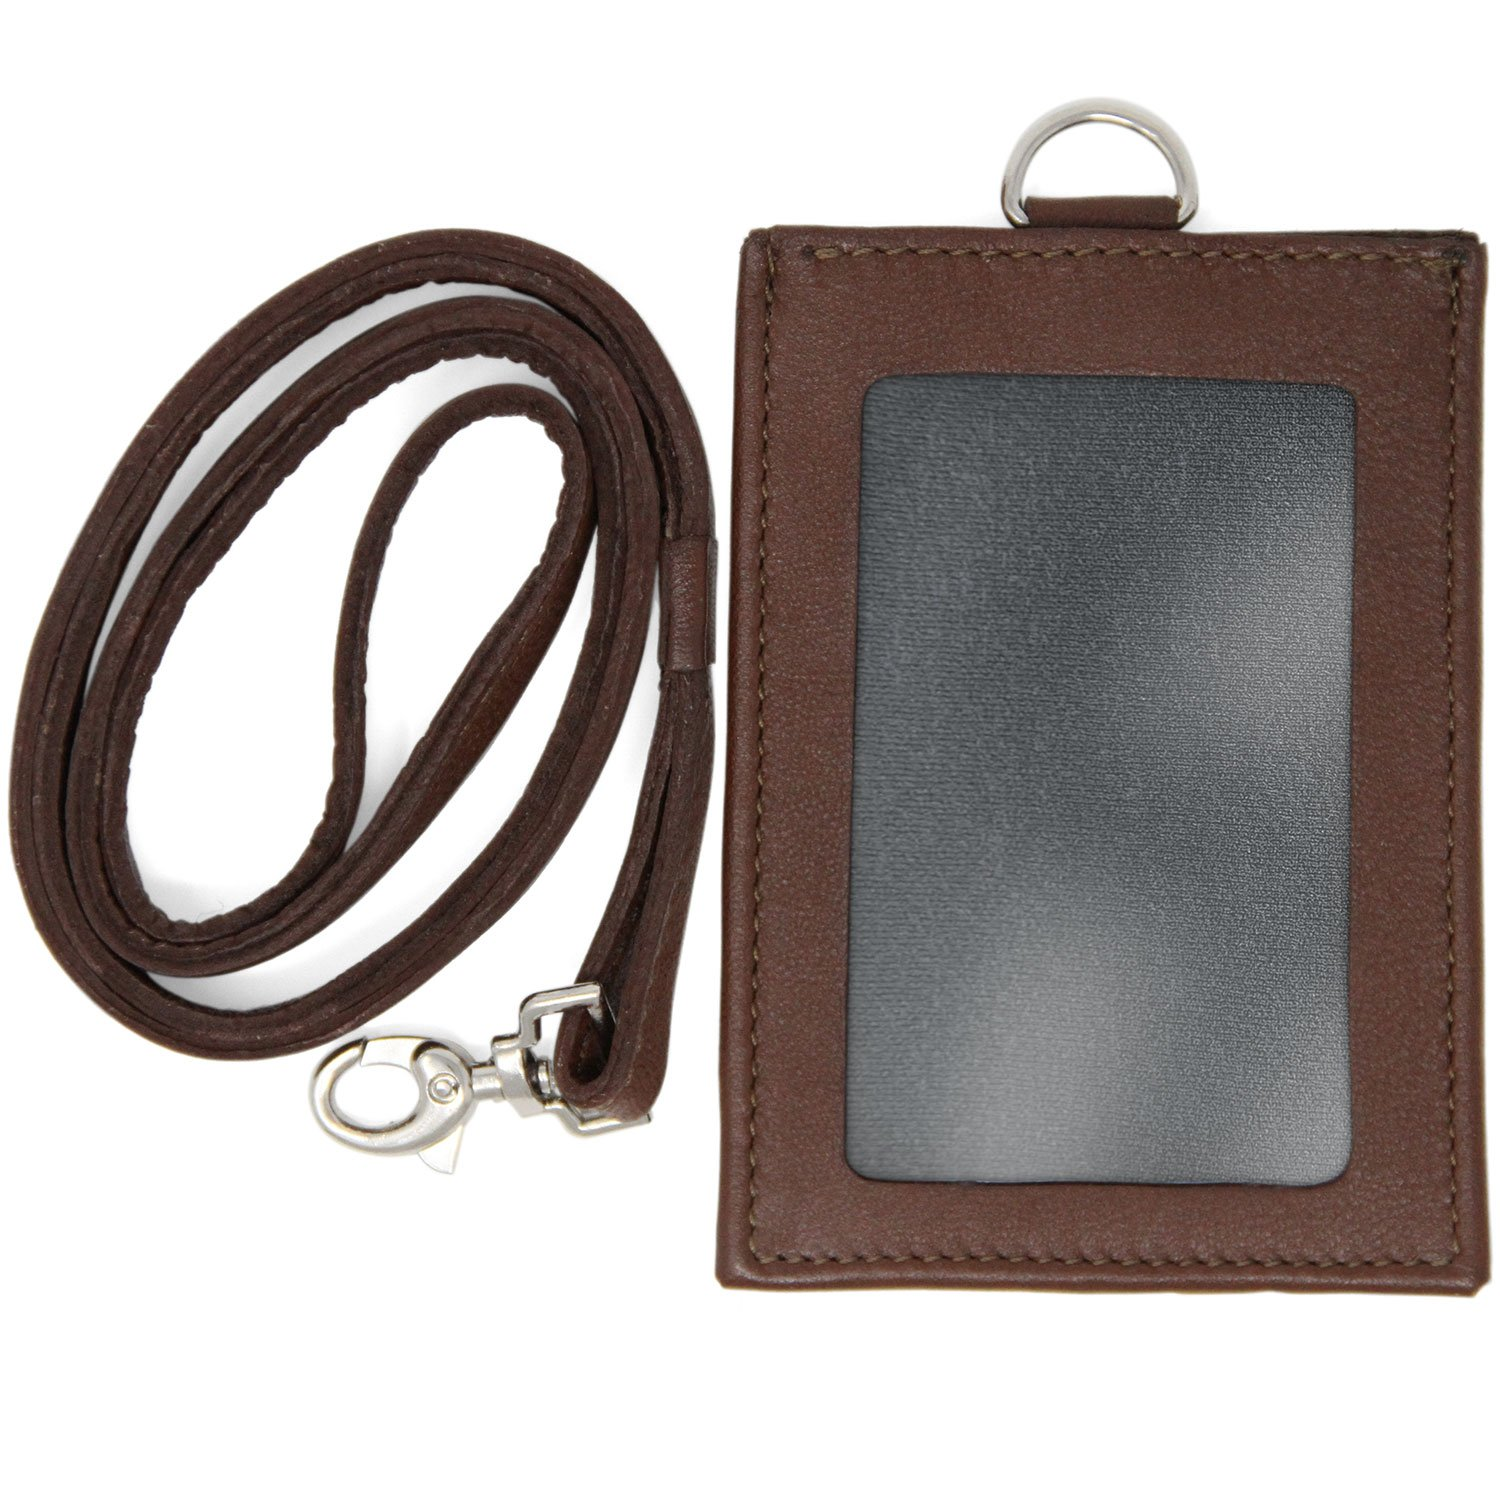 Logical Leather ID Lanyard with Detachable Vertical Badge Holder - Genuine Leather Lanyards for Women & Men (Brown)